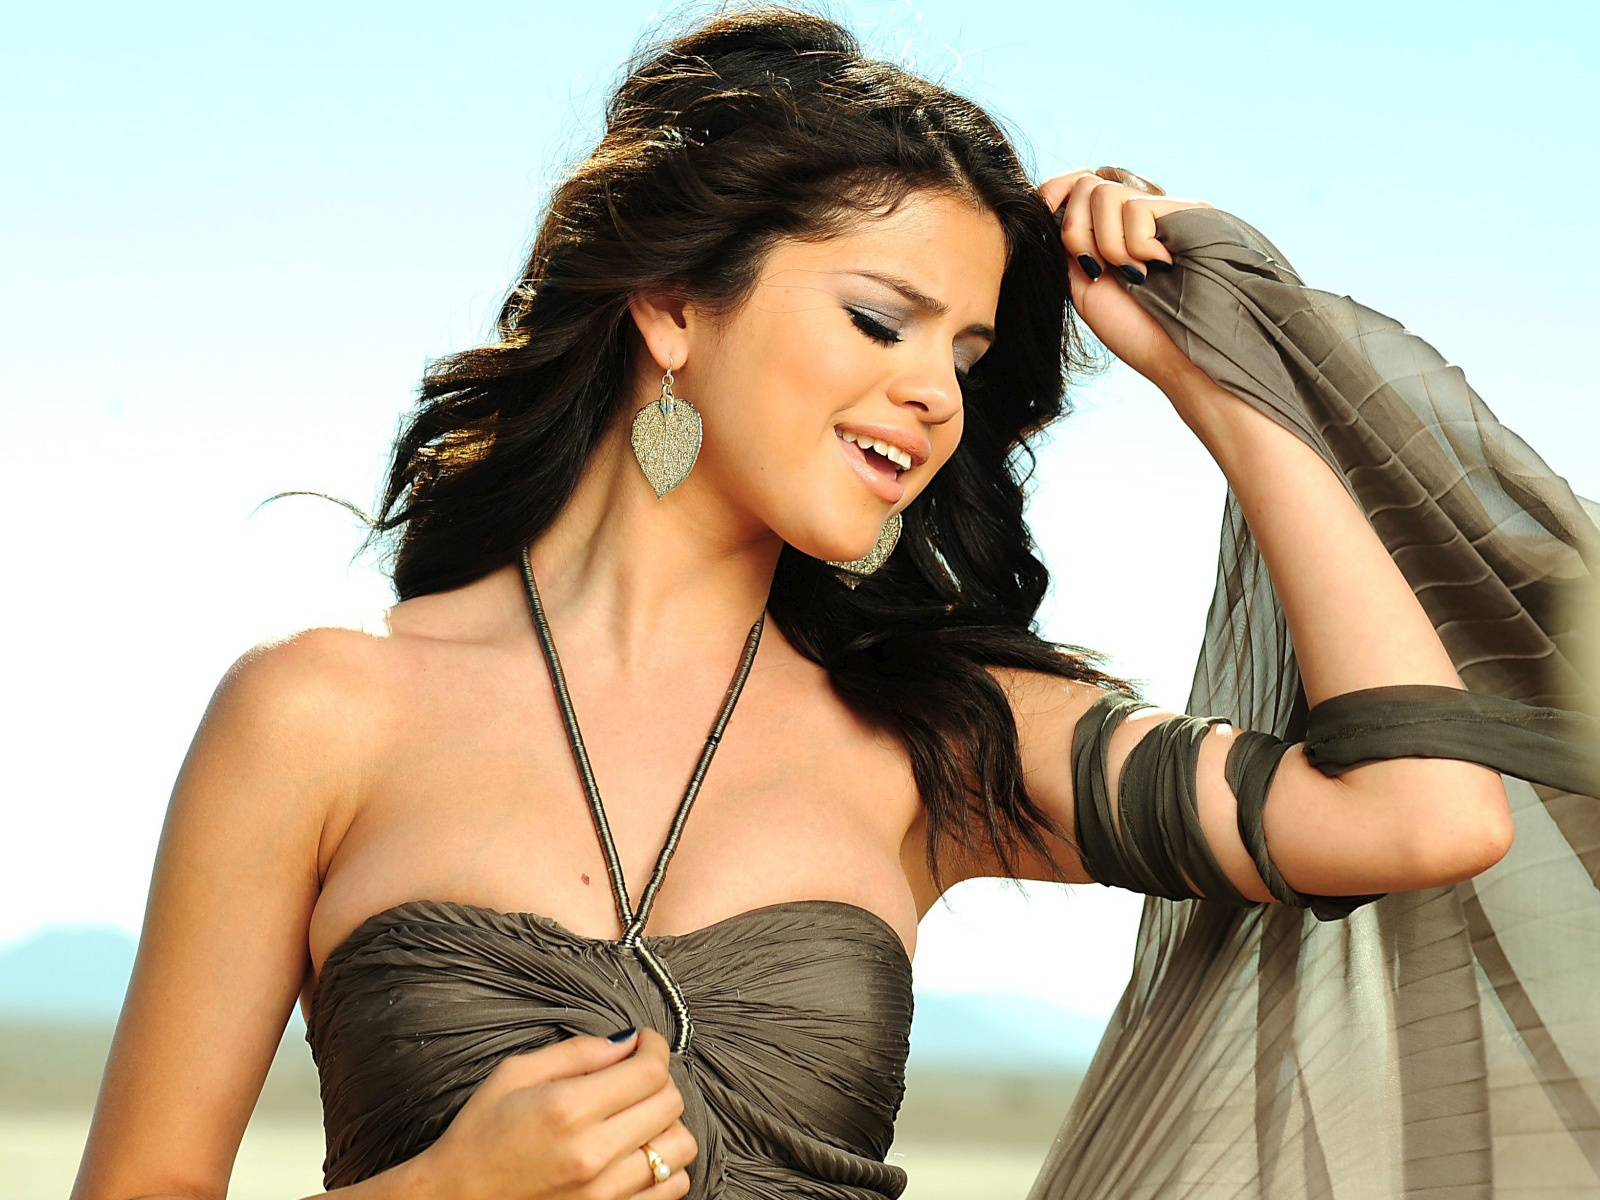 Selena Gomez A Year Without Rain 4185199 1600x1200 All